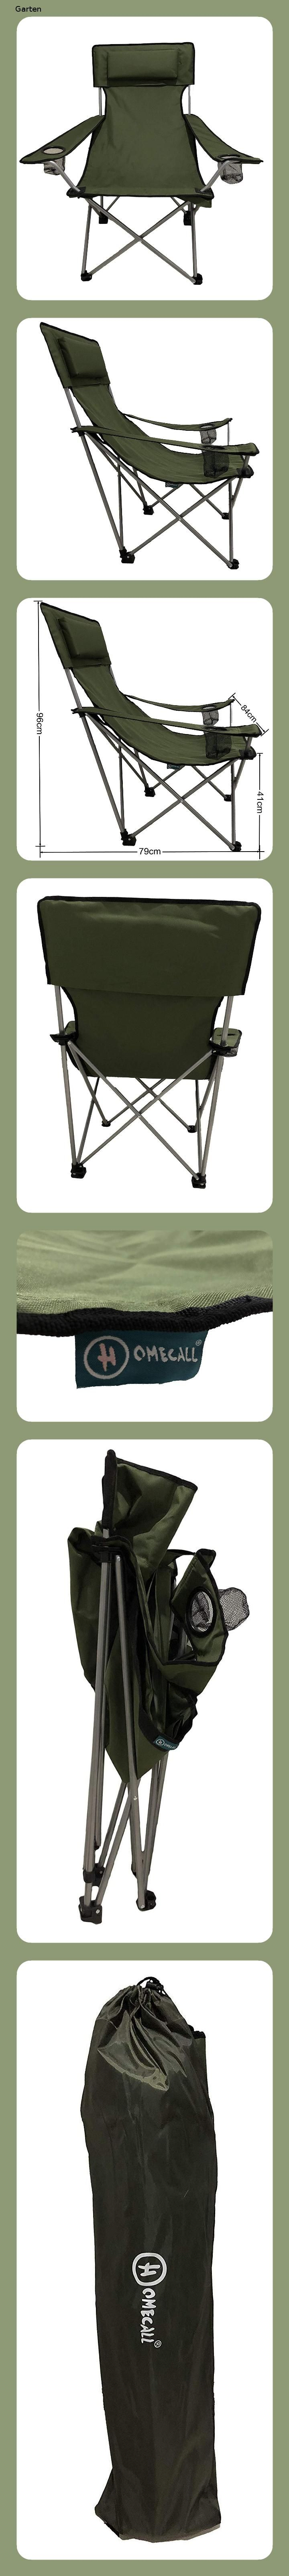 HOMECALL Camping Chair, foldable, green, Armrests with